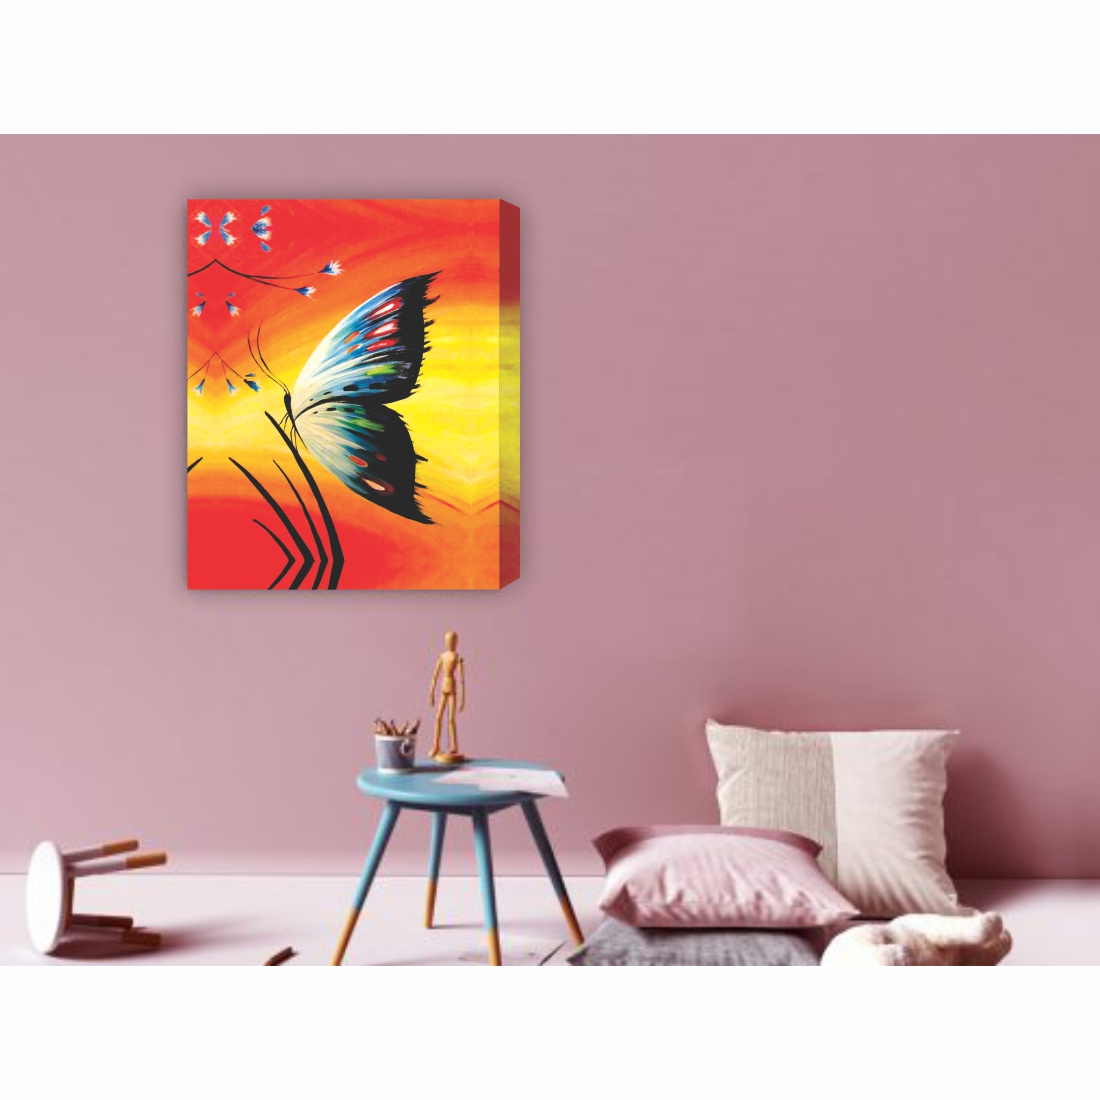 Butterfly Canvas Painting,18 Inch X 23 Inch